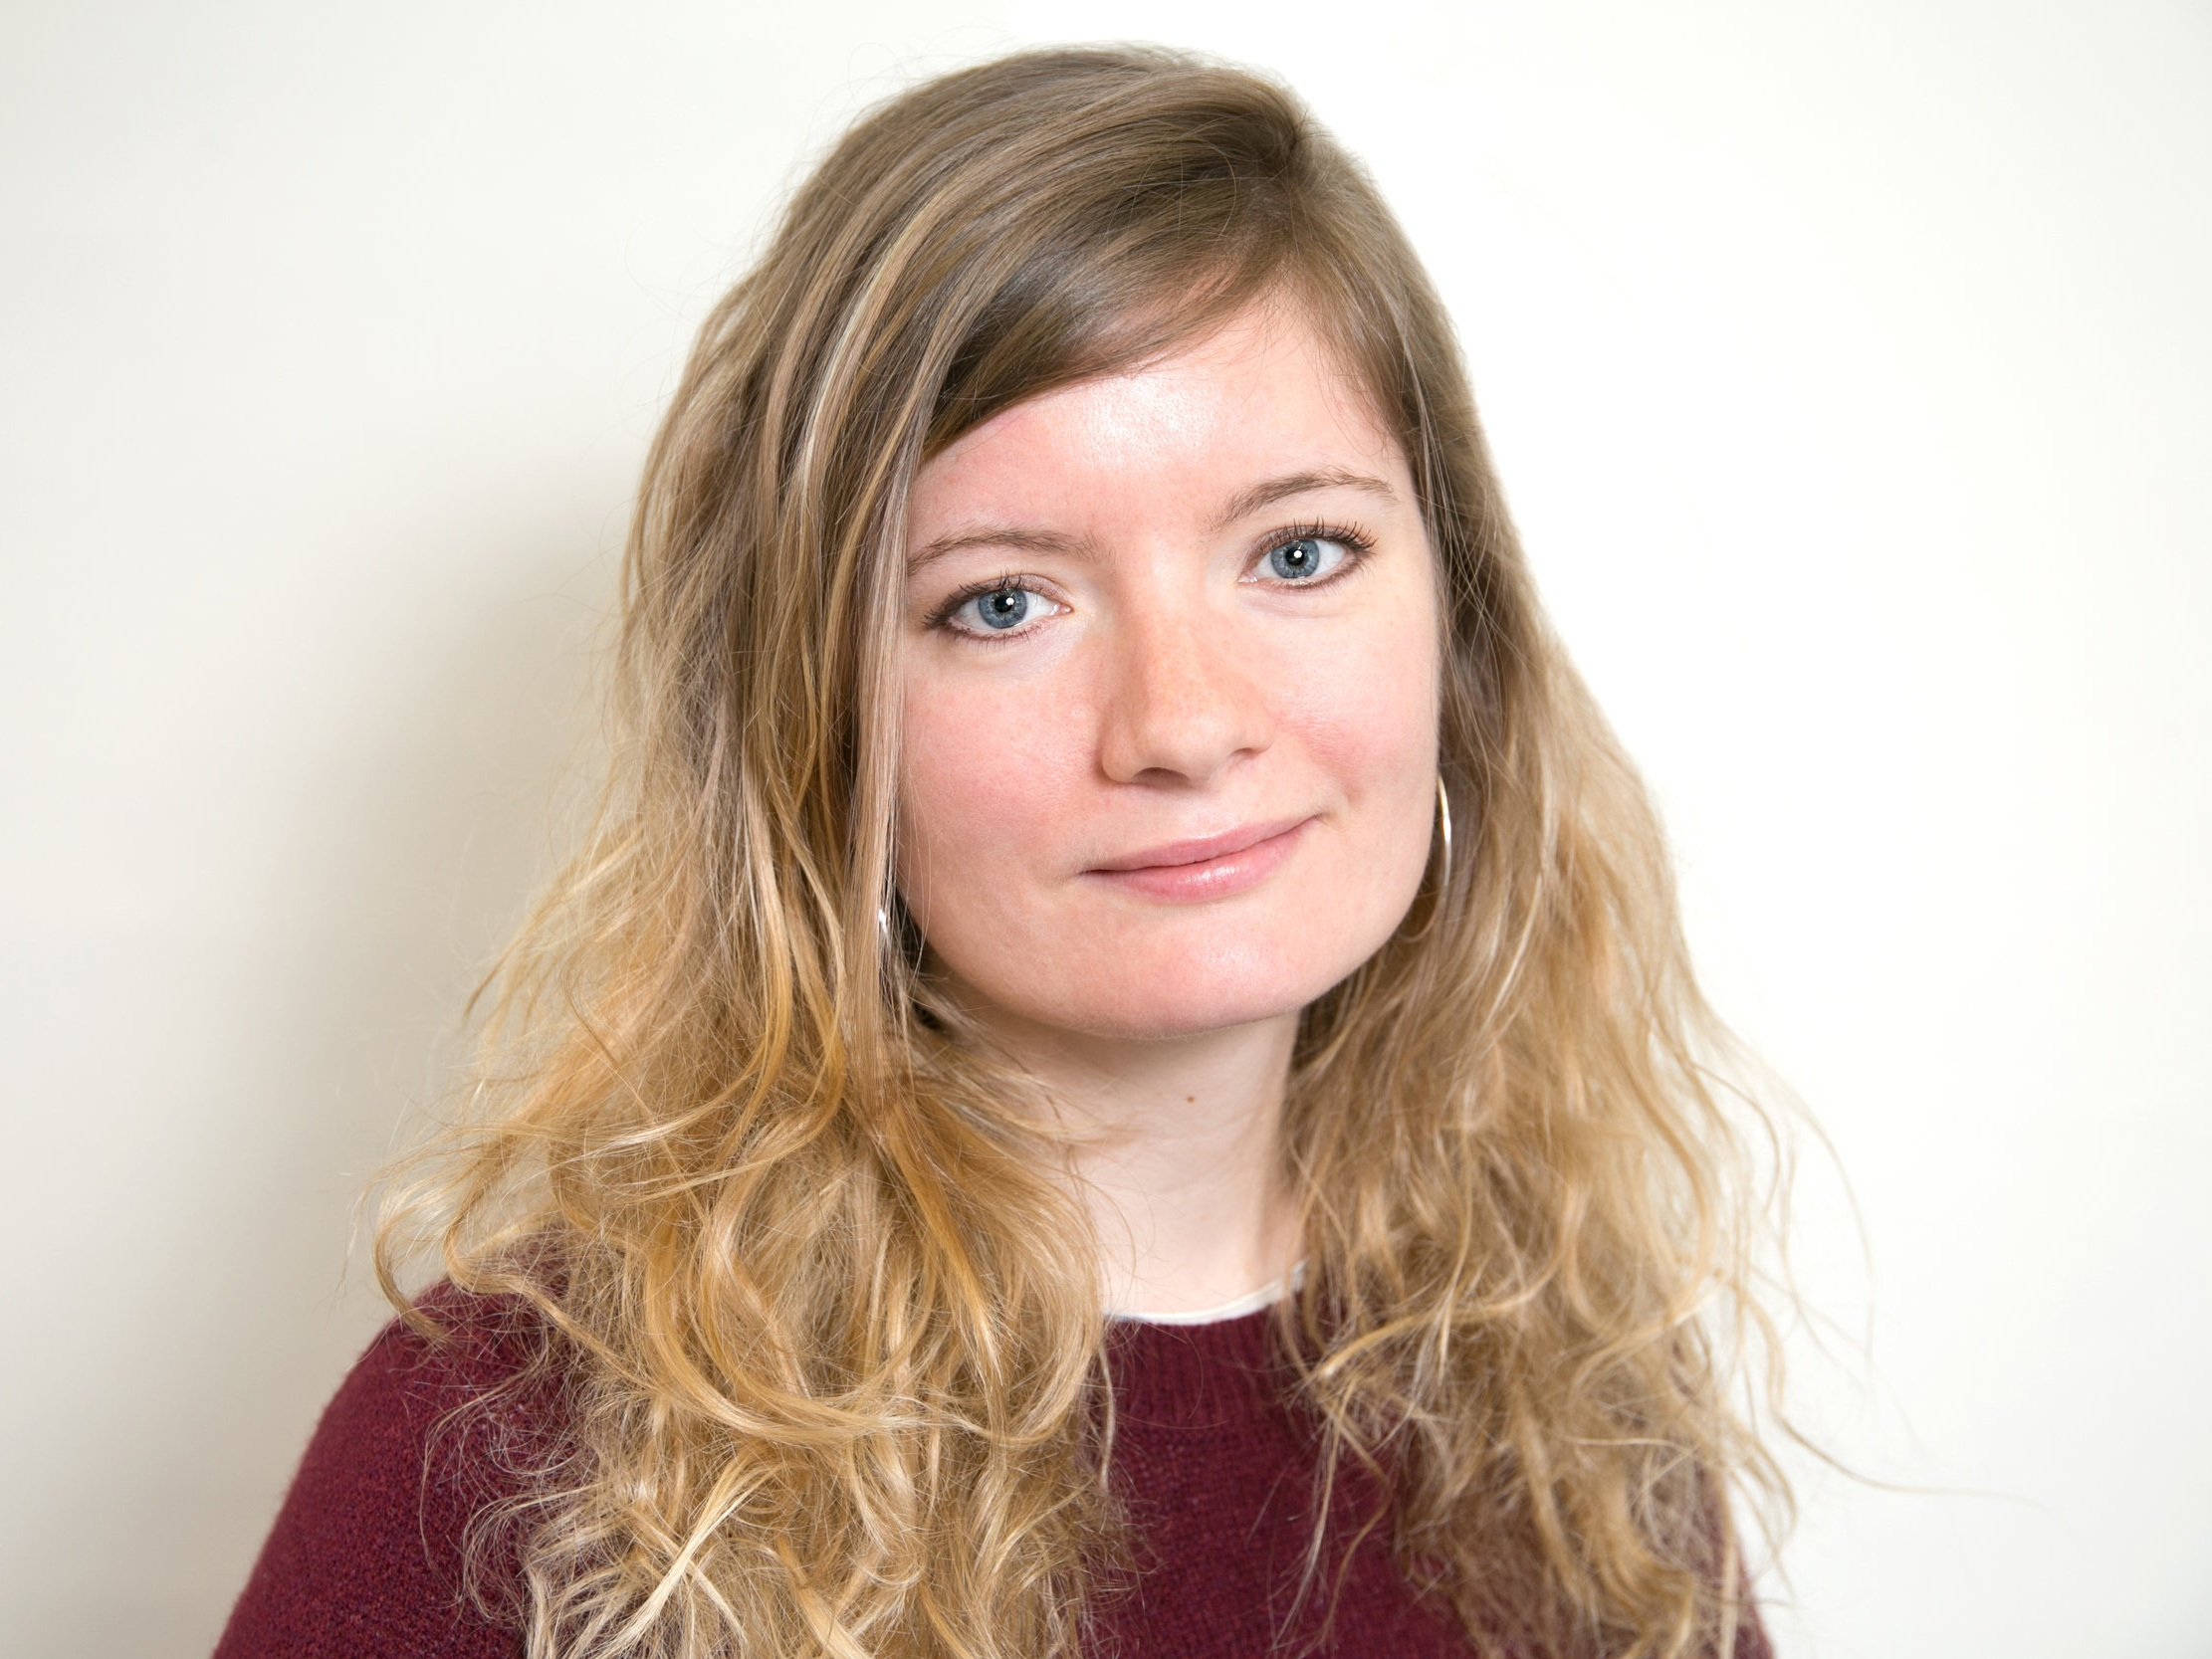 GADN is a vital resource. Their webinars are particularly informative, bringing together different perspectives - from women's rights activists on the ground to high-level policymakers - to debate major policy issues. - - Abigail Hunt, Research Fellow, Overseas Development Institute